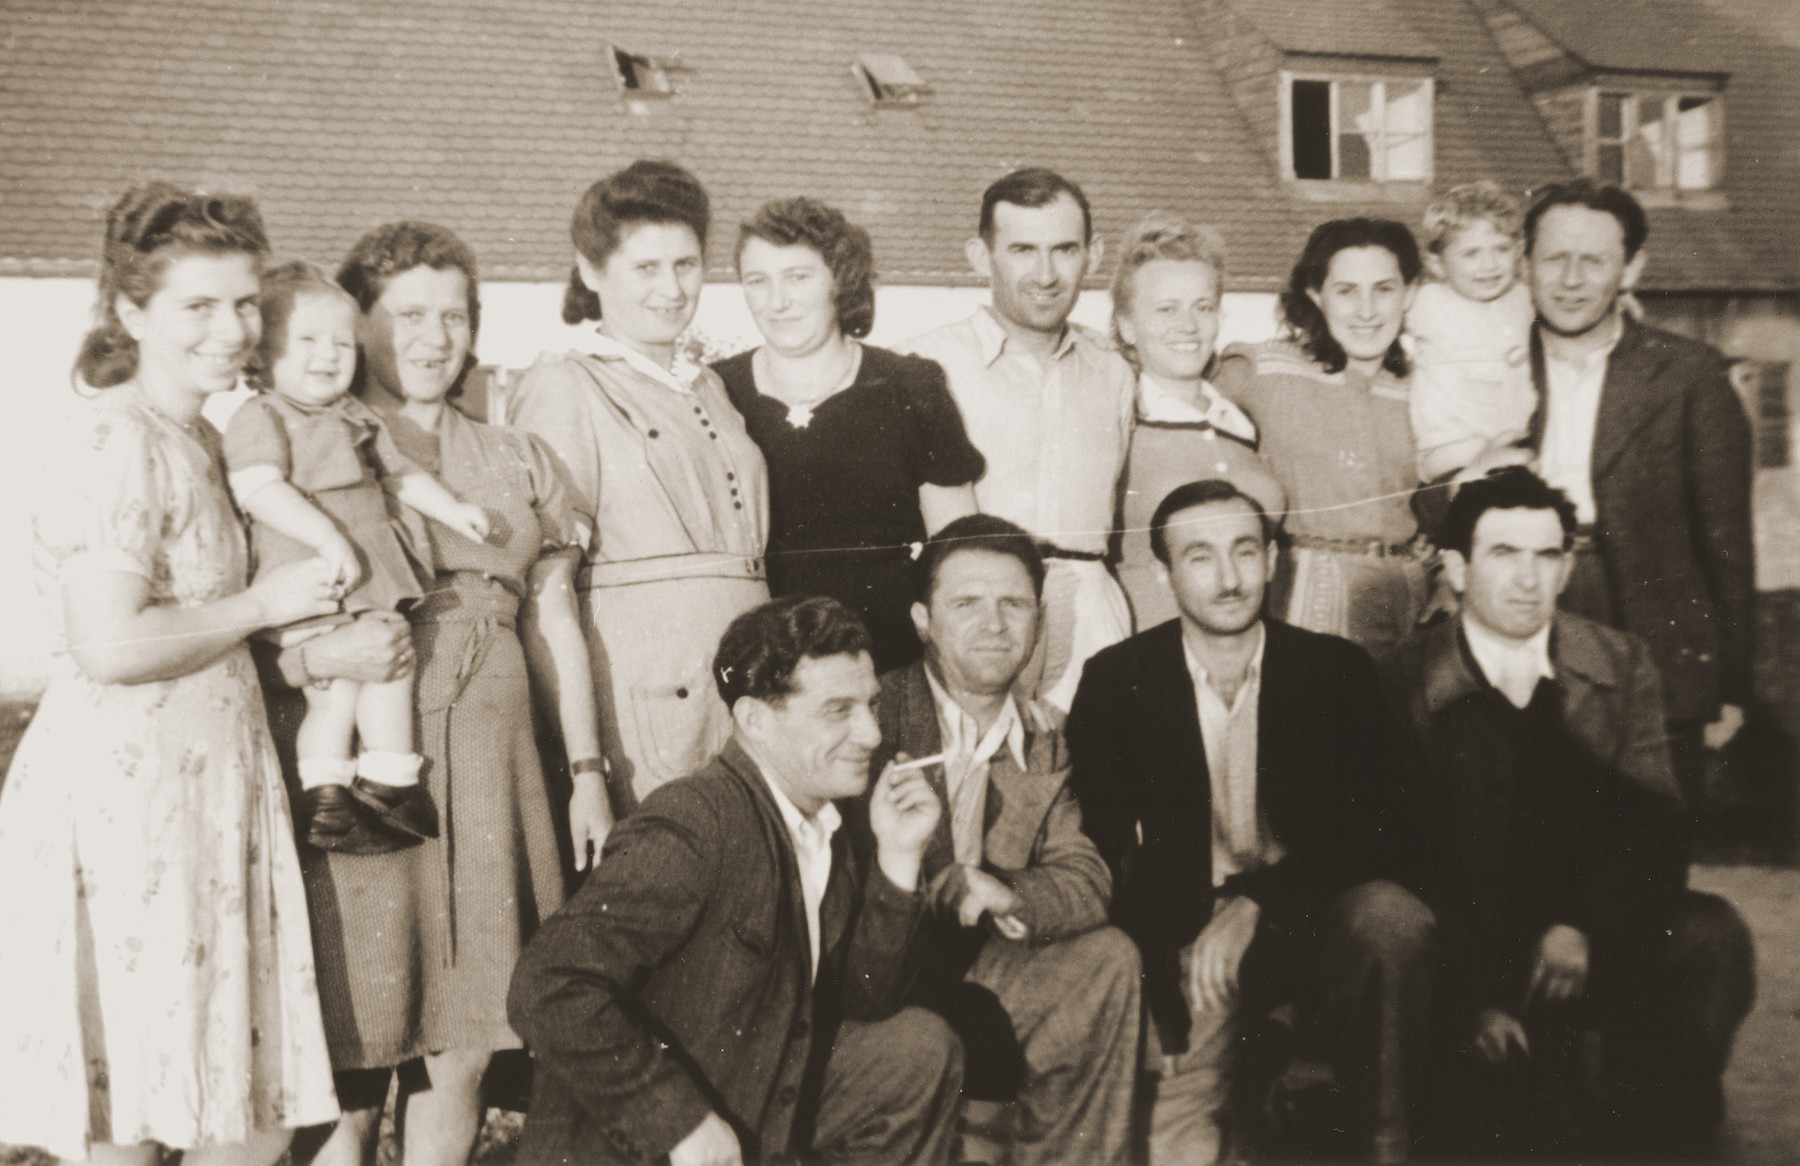 Group portrait of Jewish DP survivors from Brody, Poland at a reunion in the Foehrenwald displaced persons camp on the first day of the Jewish holiday of Sukkoth, 1946.  Among those pictured are Greta (Gruenfeld) Chalfin, Lisa Chalfin, Herman Rosenfeld, Genya Rosenfeld, Rachel Katz, and Szmulik Katz.